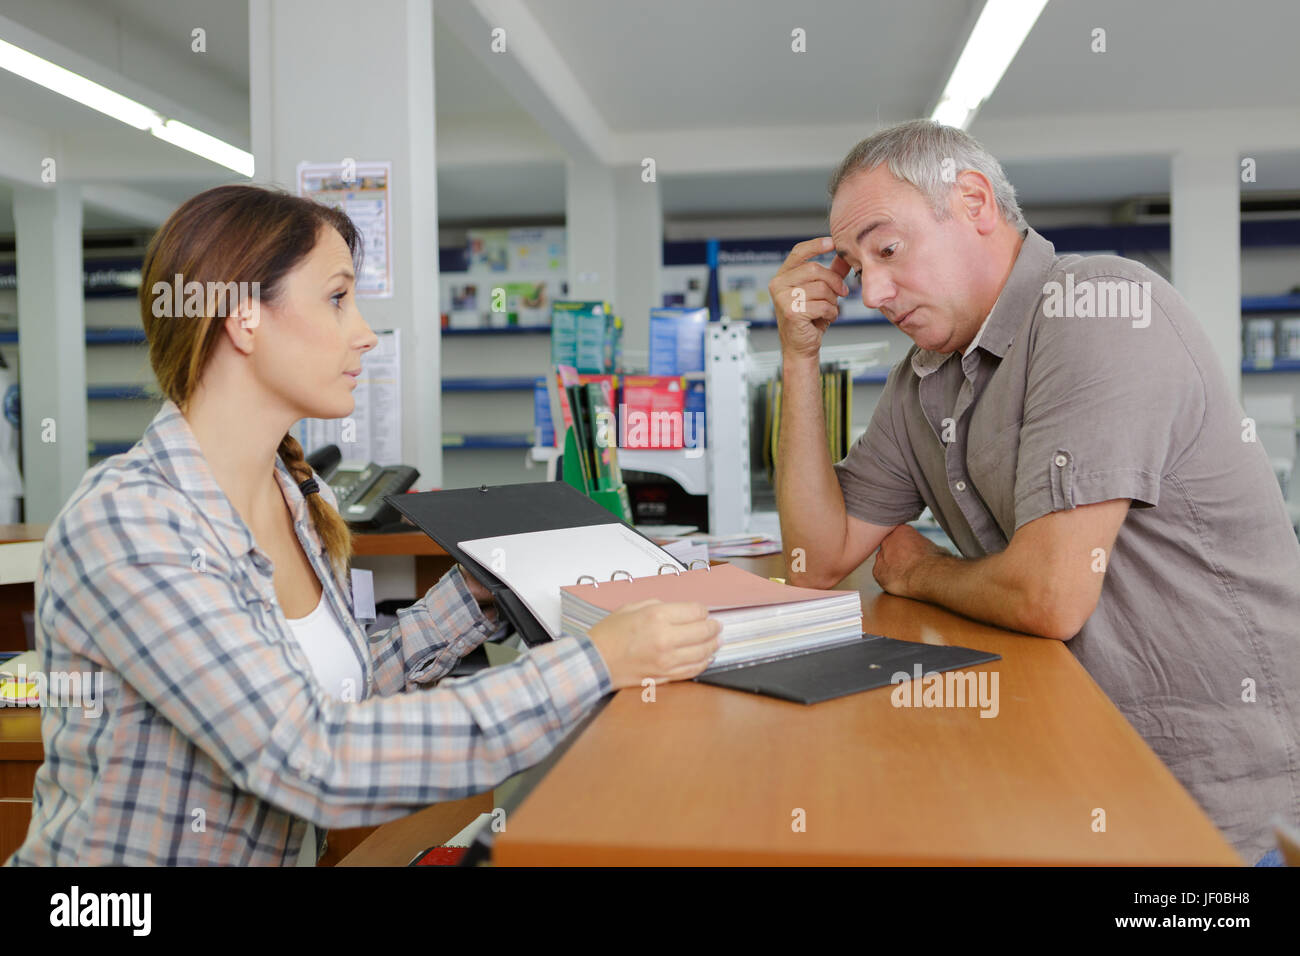 Stressed customer at shop counter - Stock Image